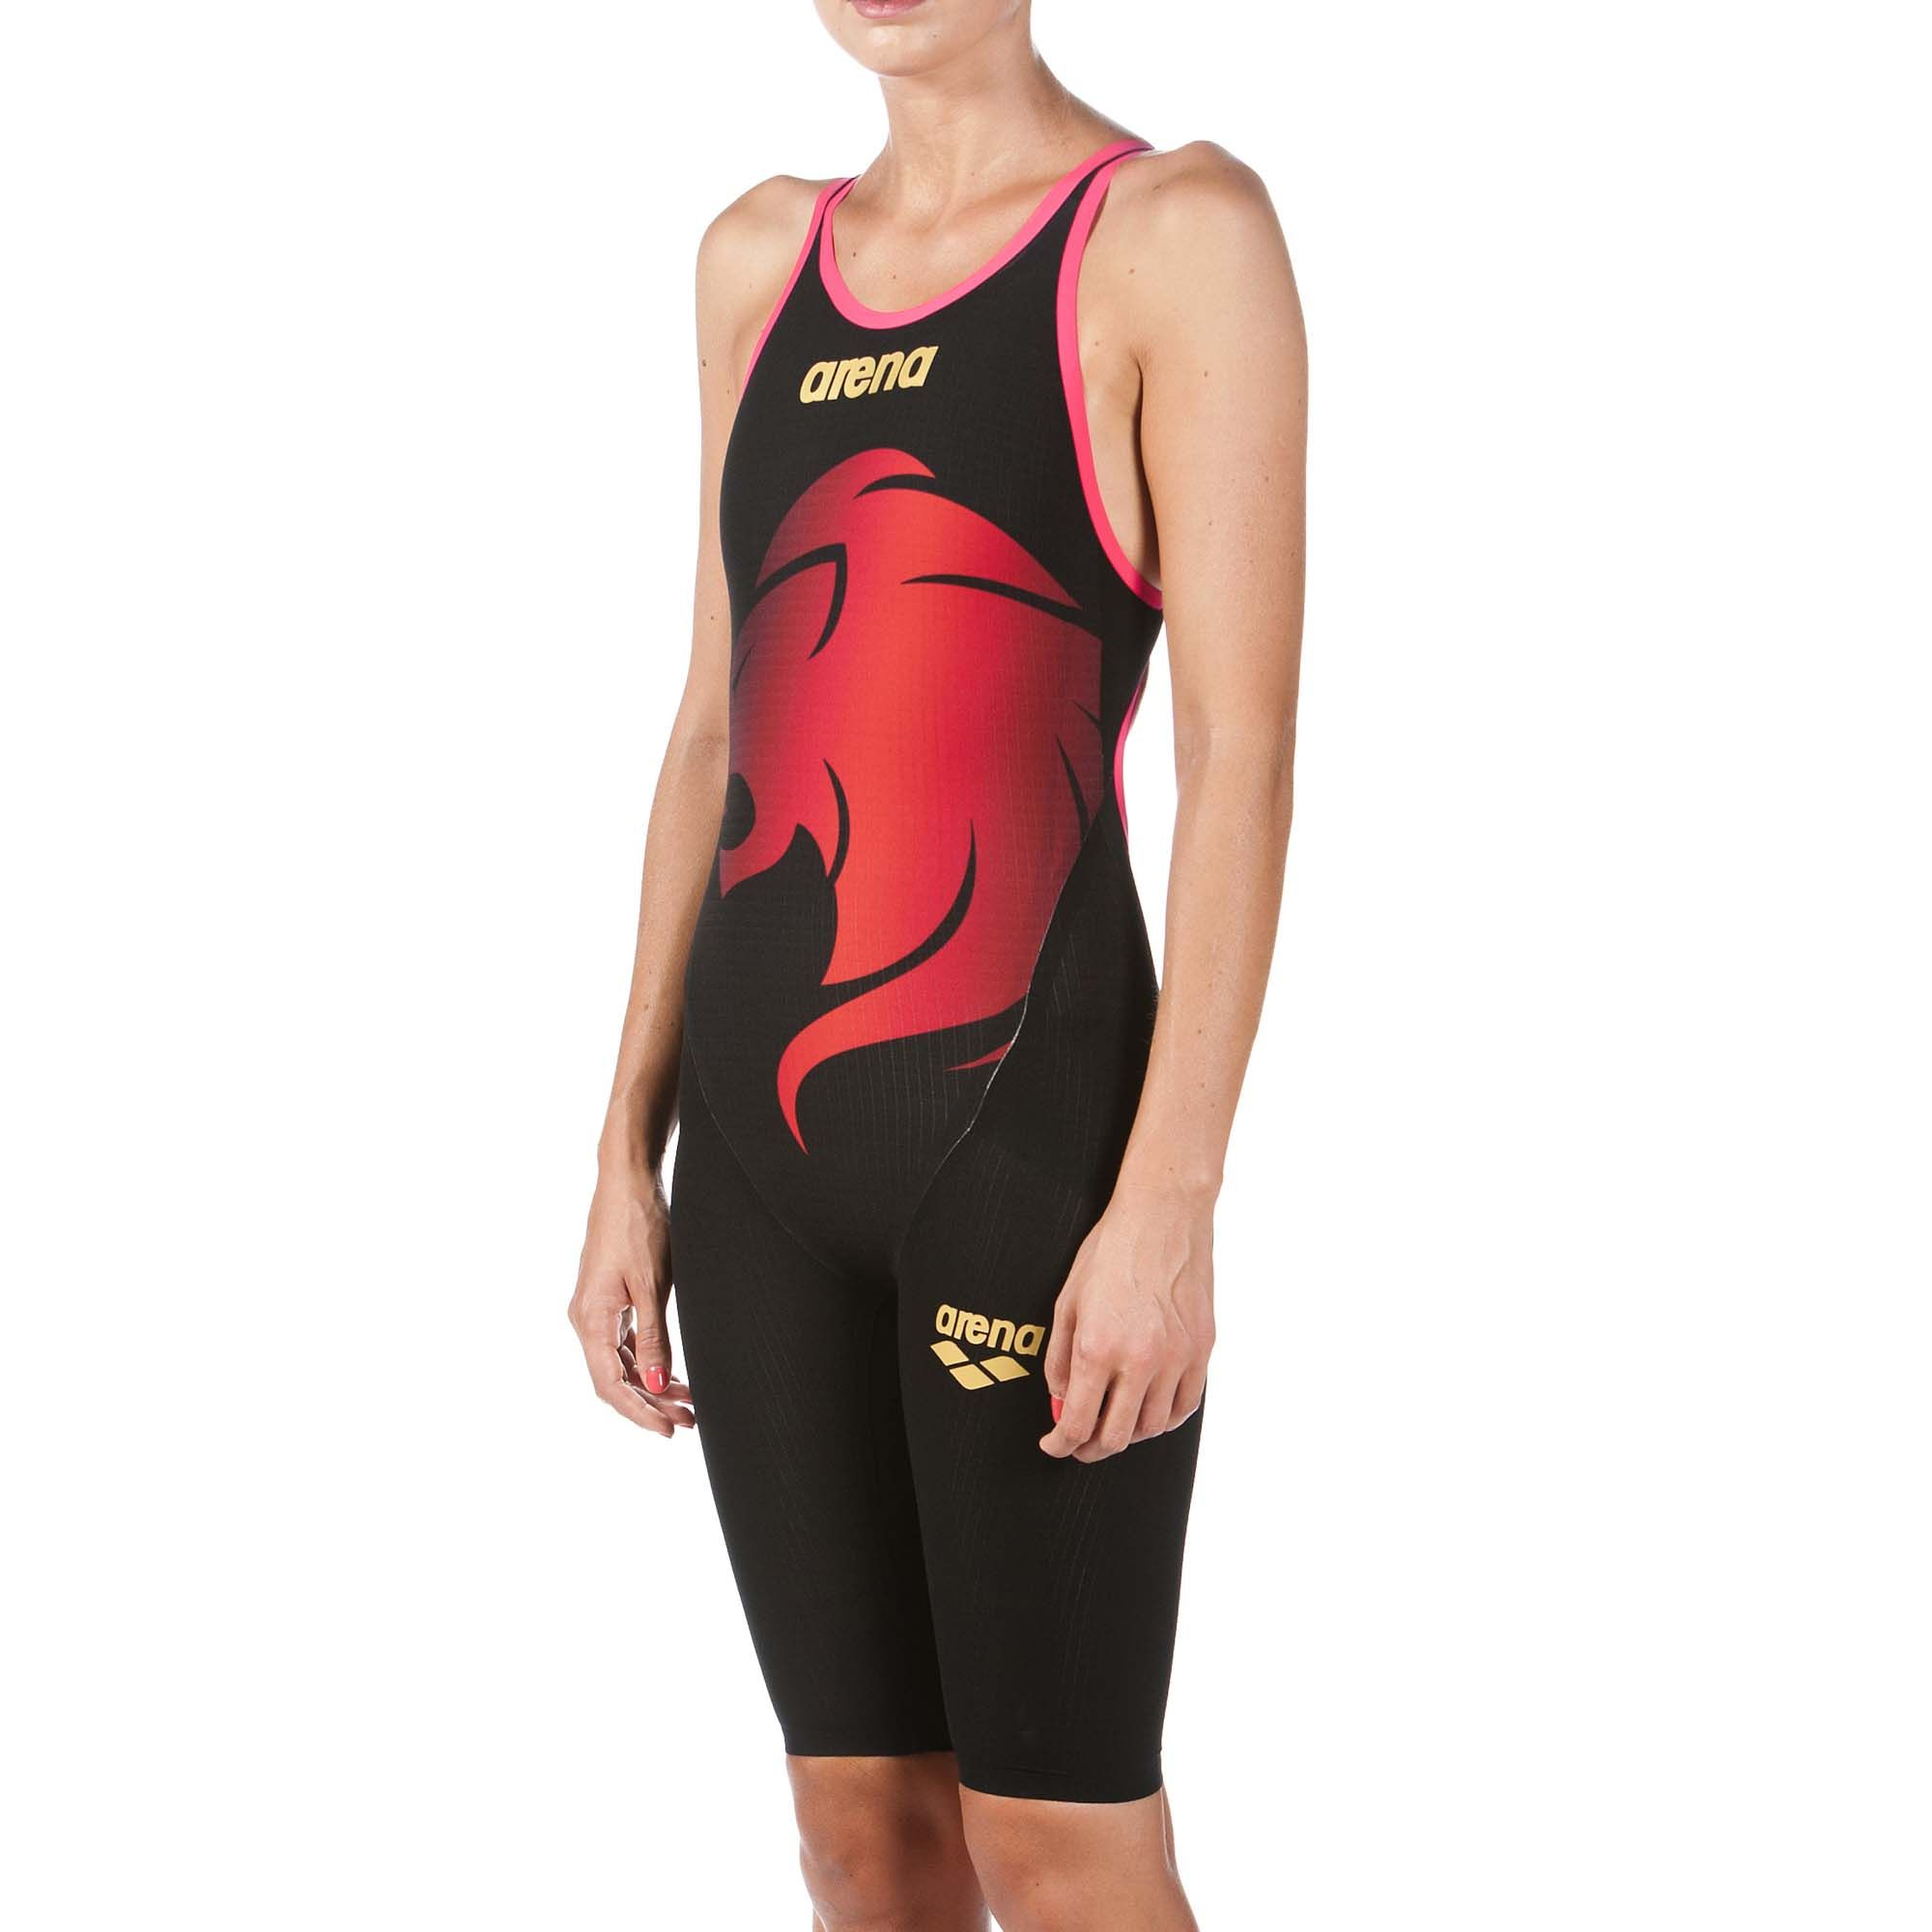 f52f922f83 Carbon Flex VX Kneesuit - Arena Powerskin Carbon Flex - Competition Swimwear  - COMPETITION